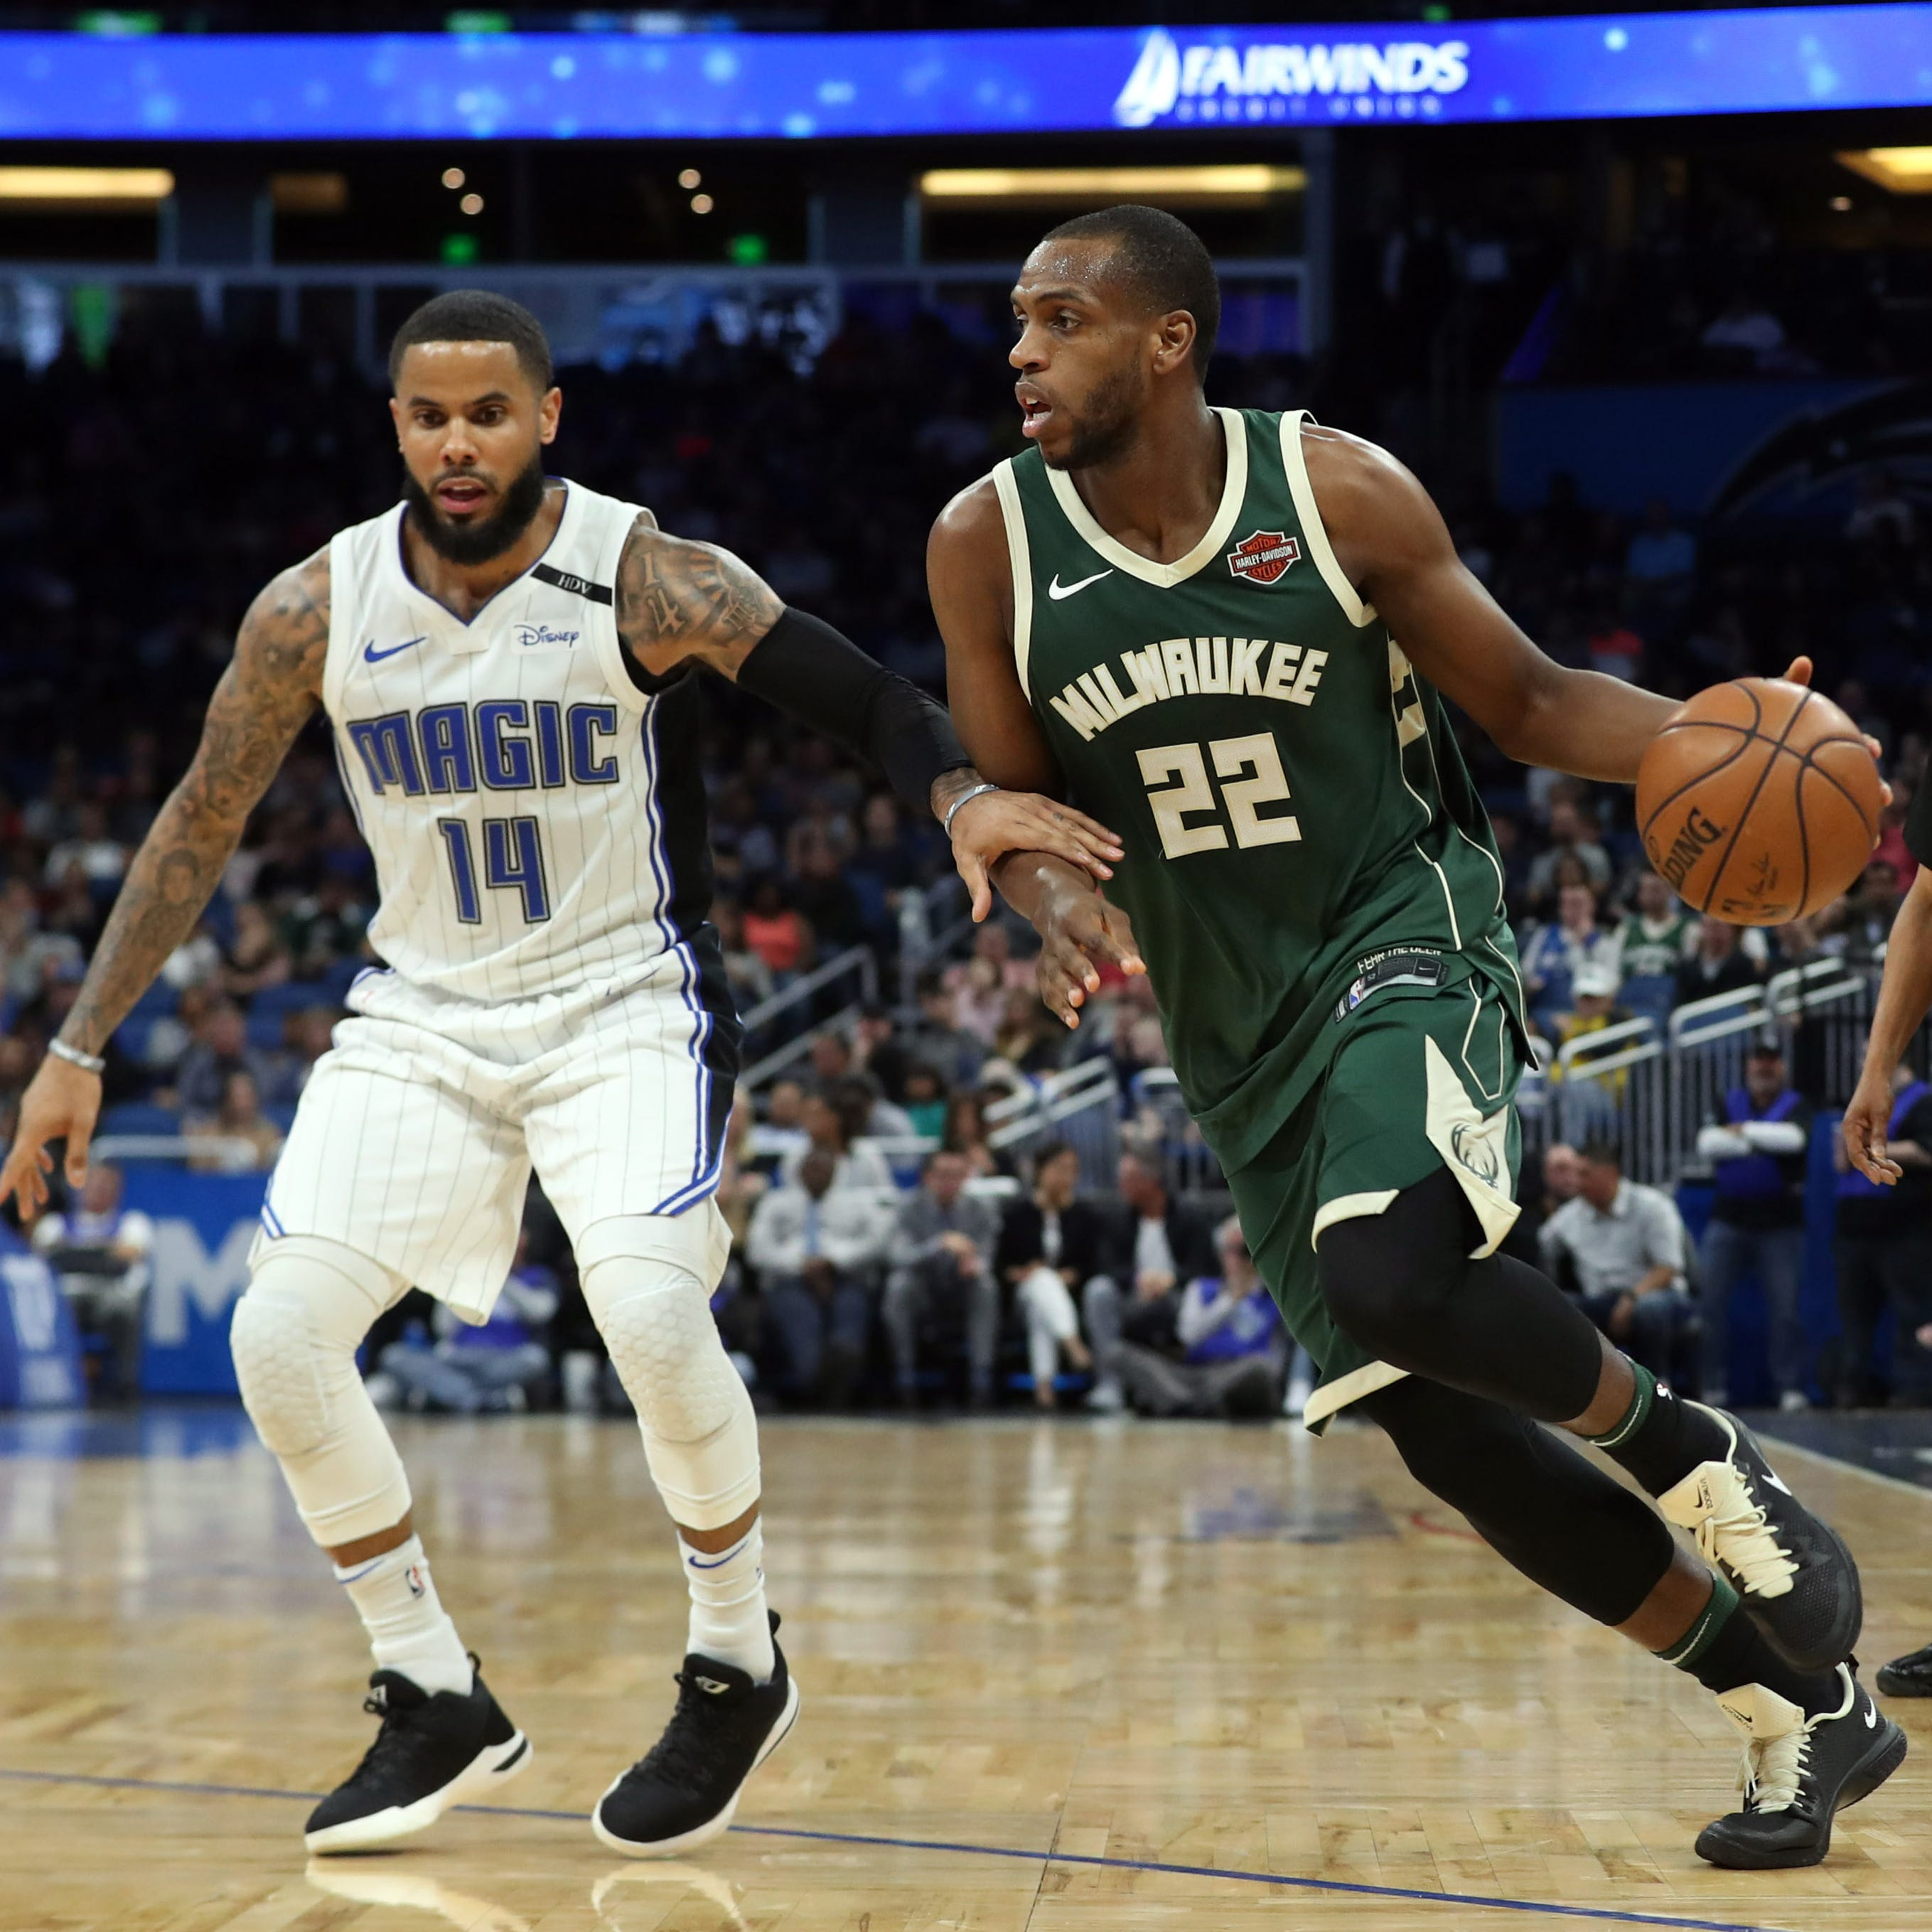 Amid tough road stretch, Bucks' expectations remain high